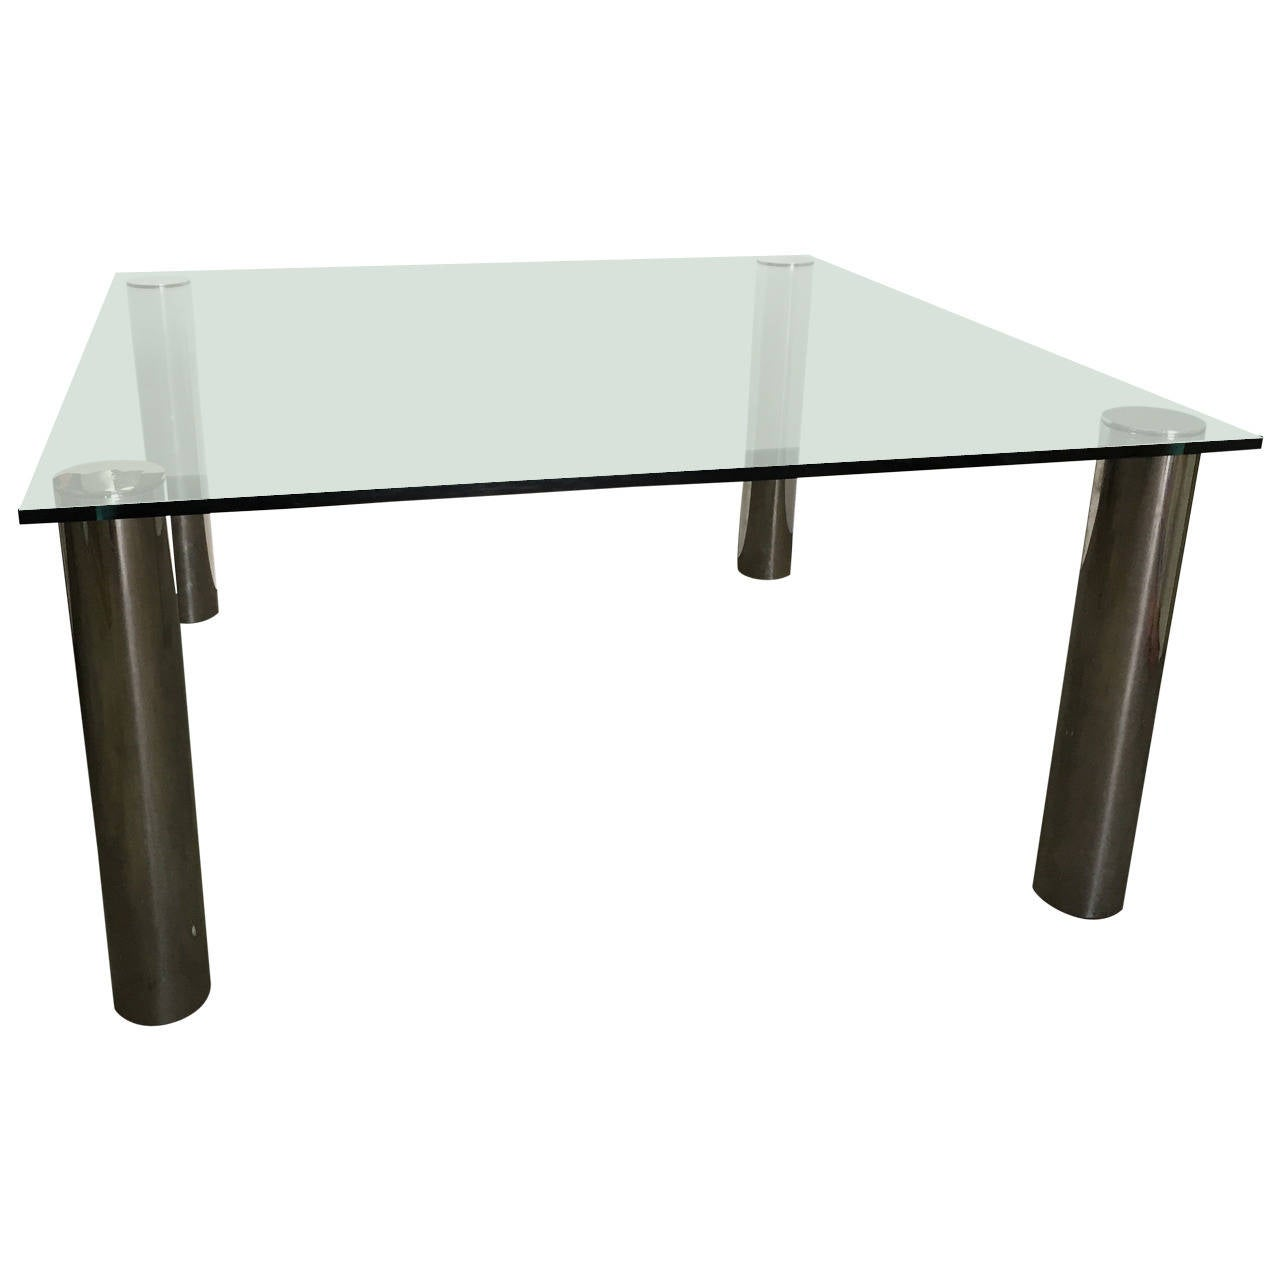 Pace oversized square chrome and glass dining table for for Glass dining table